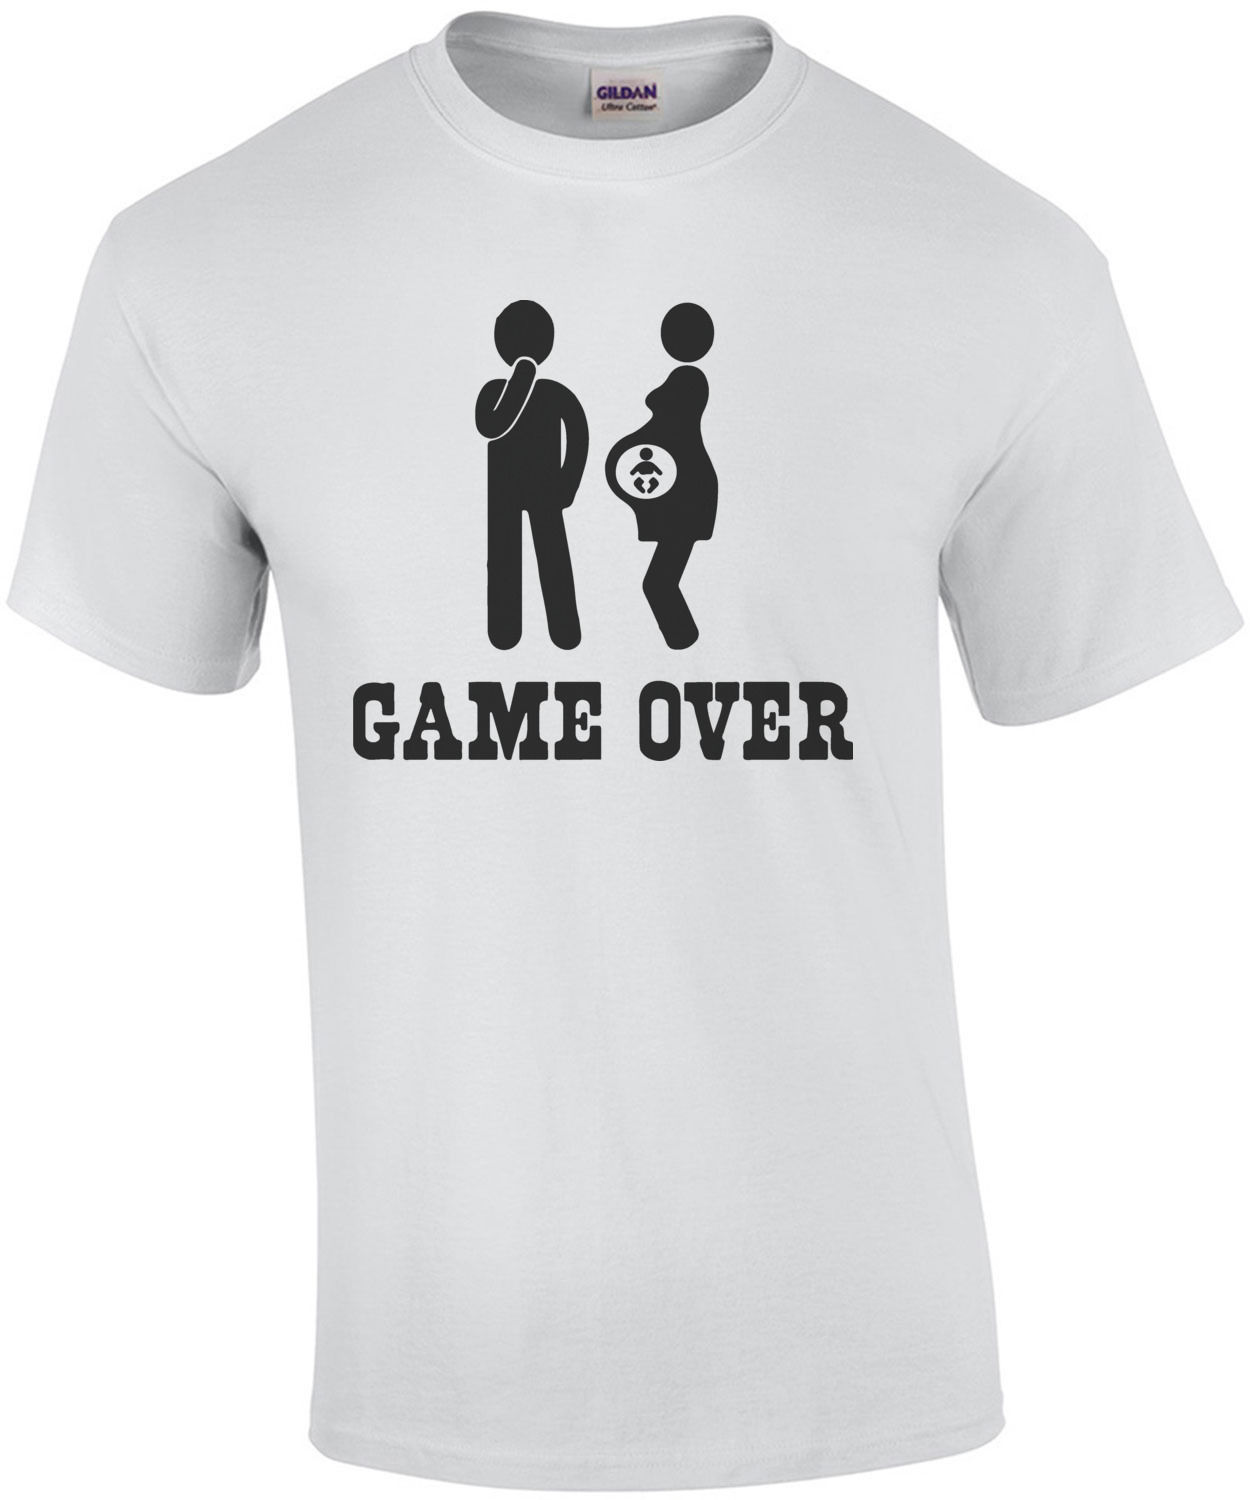 Compare Prices on Funny Pregnancy Shirts for Men- Online Shopping ...